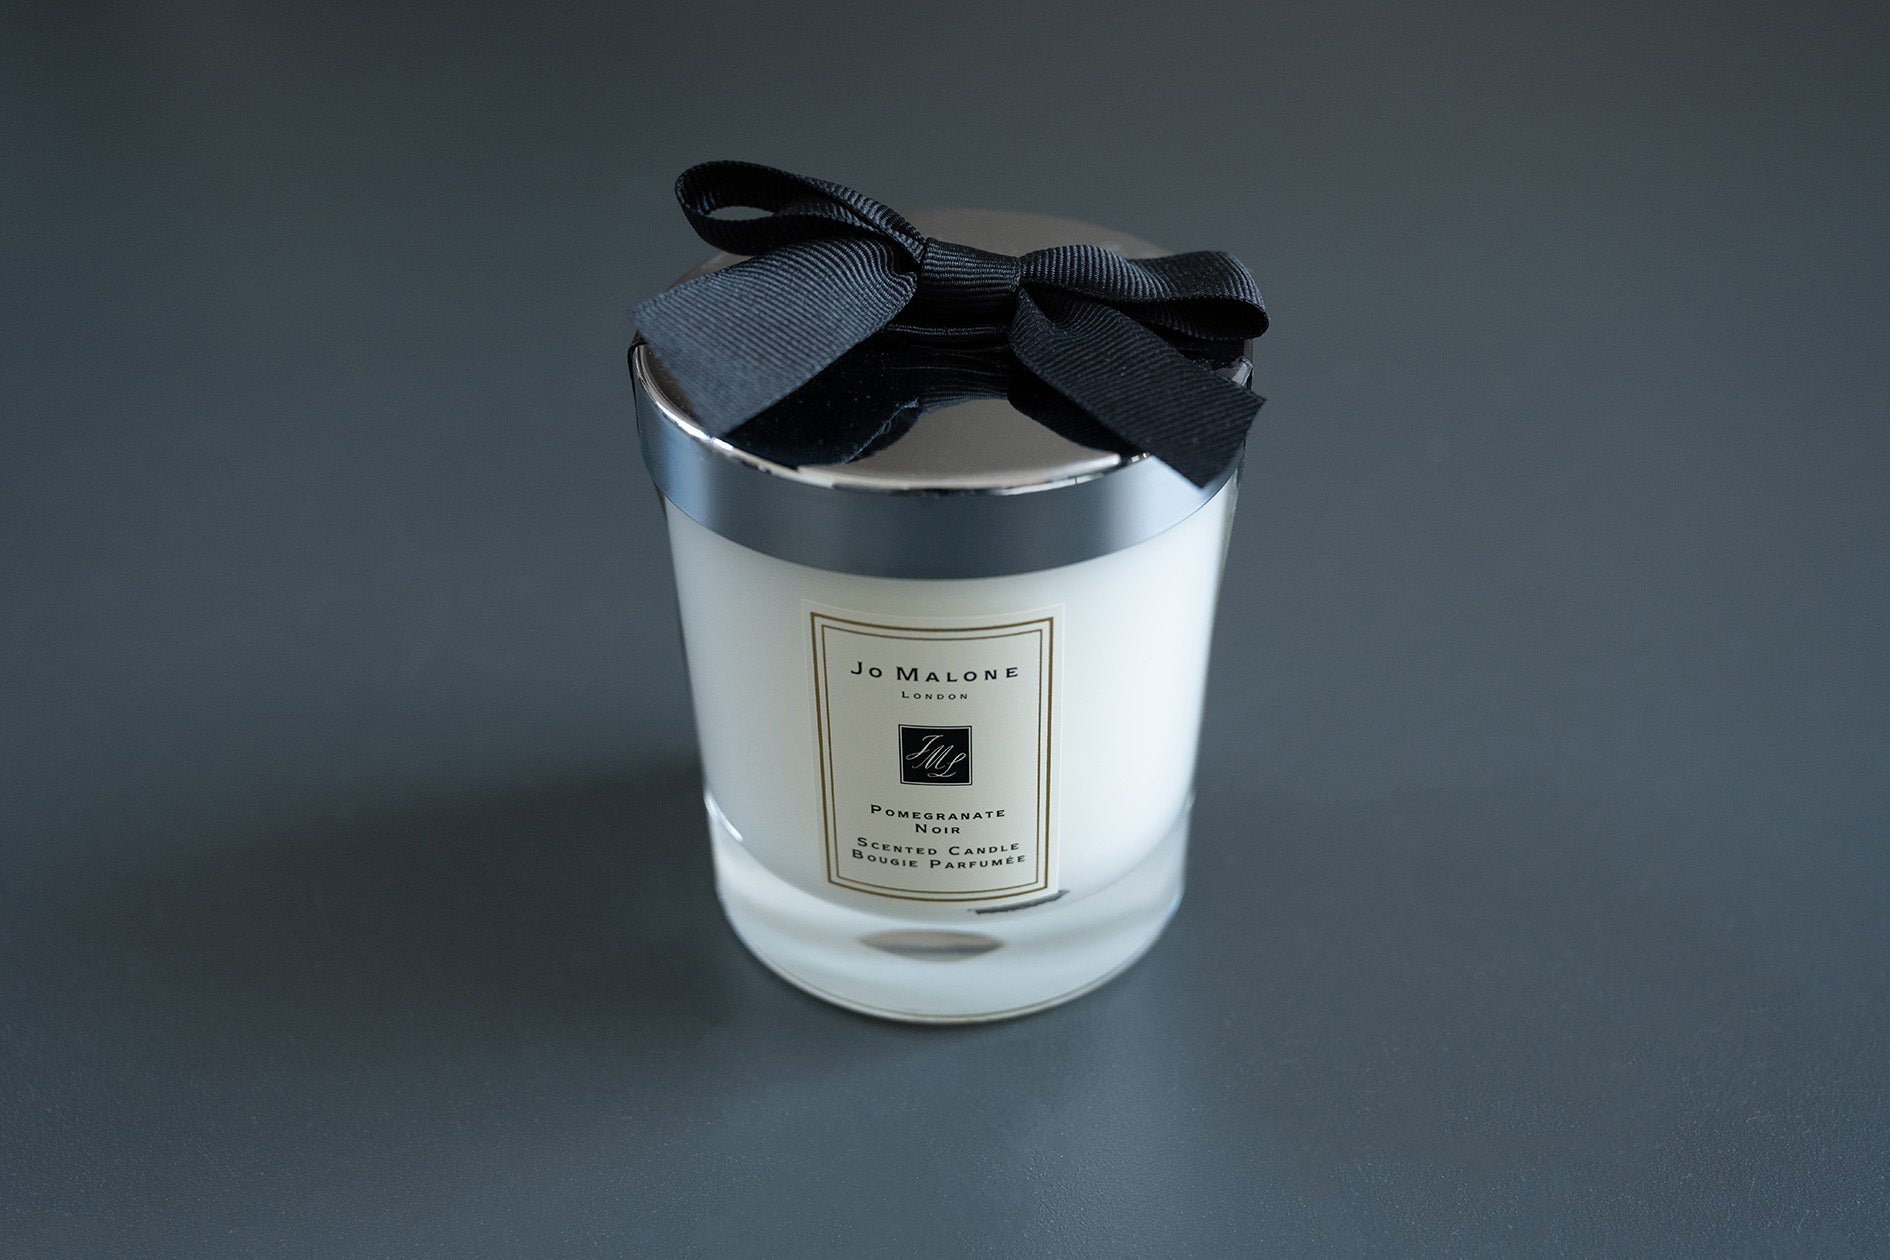 Jo Malone Home Candle - Pomegranate Noir